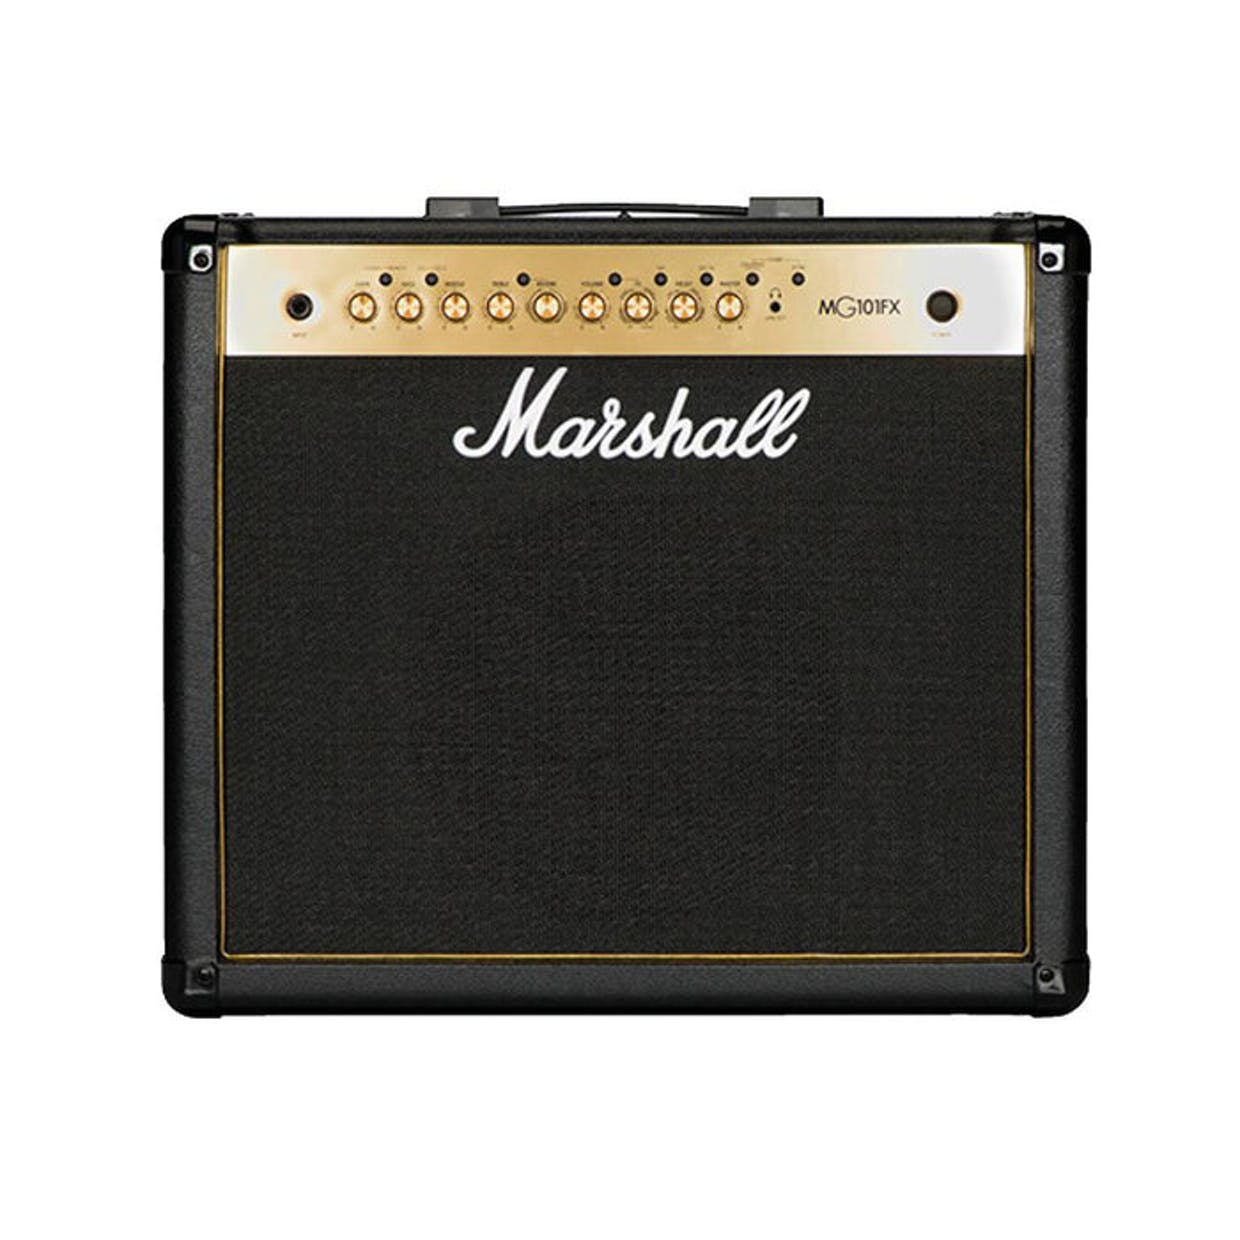 Marshall MG101GFX 100W 1X12-Inch Combo Guitar Amplifier with Effects